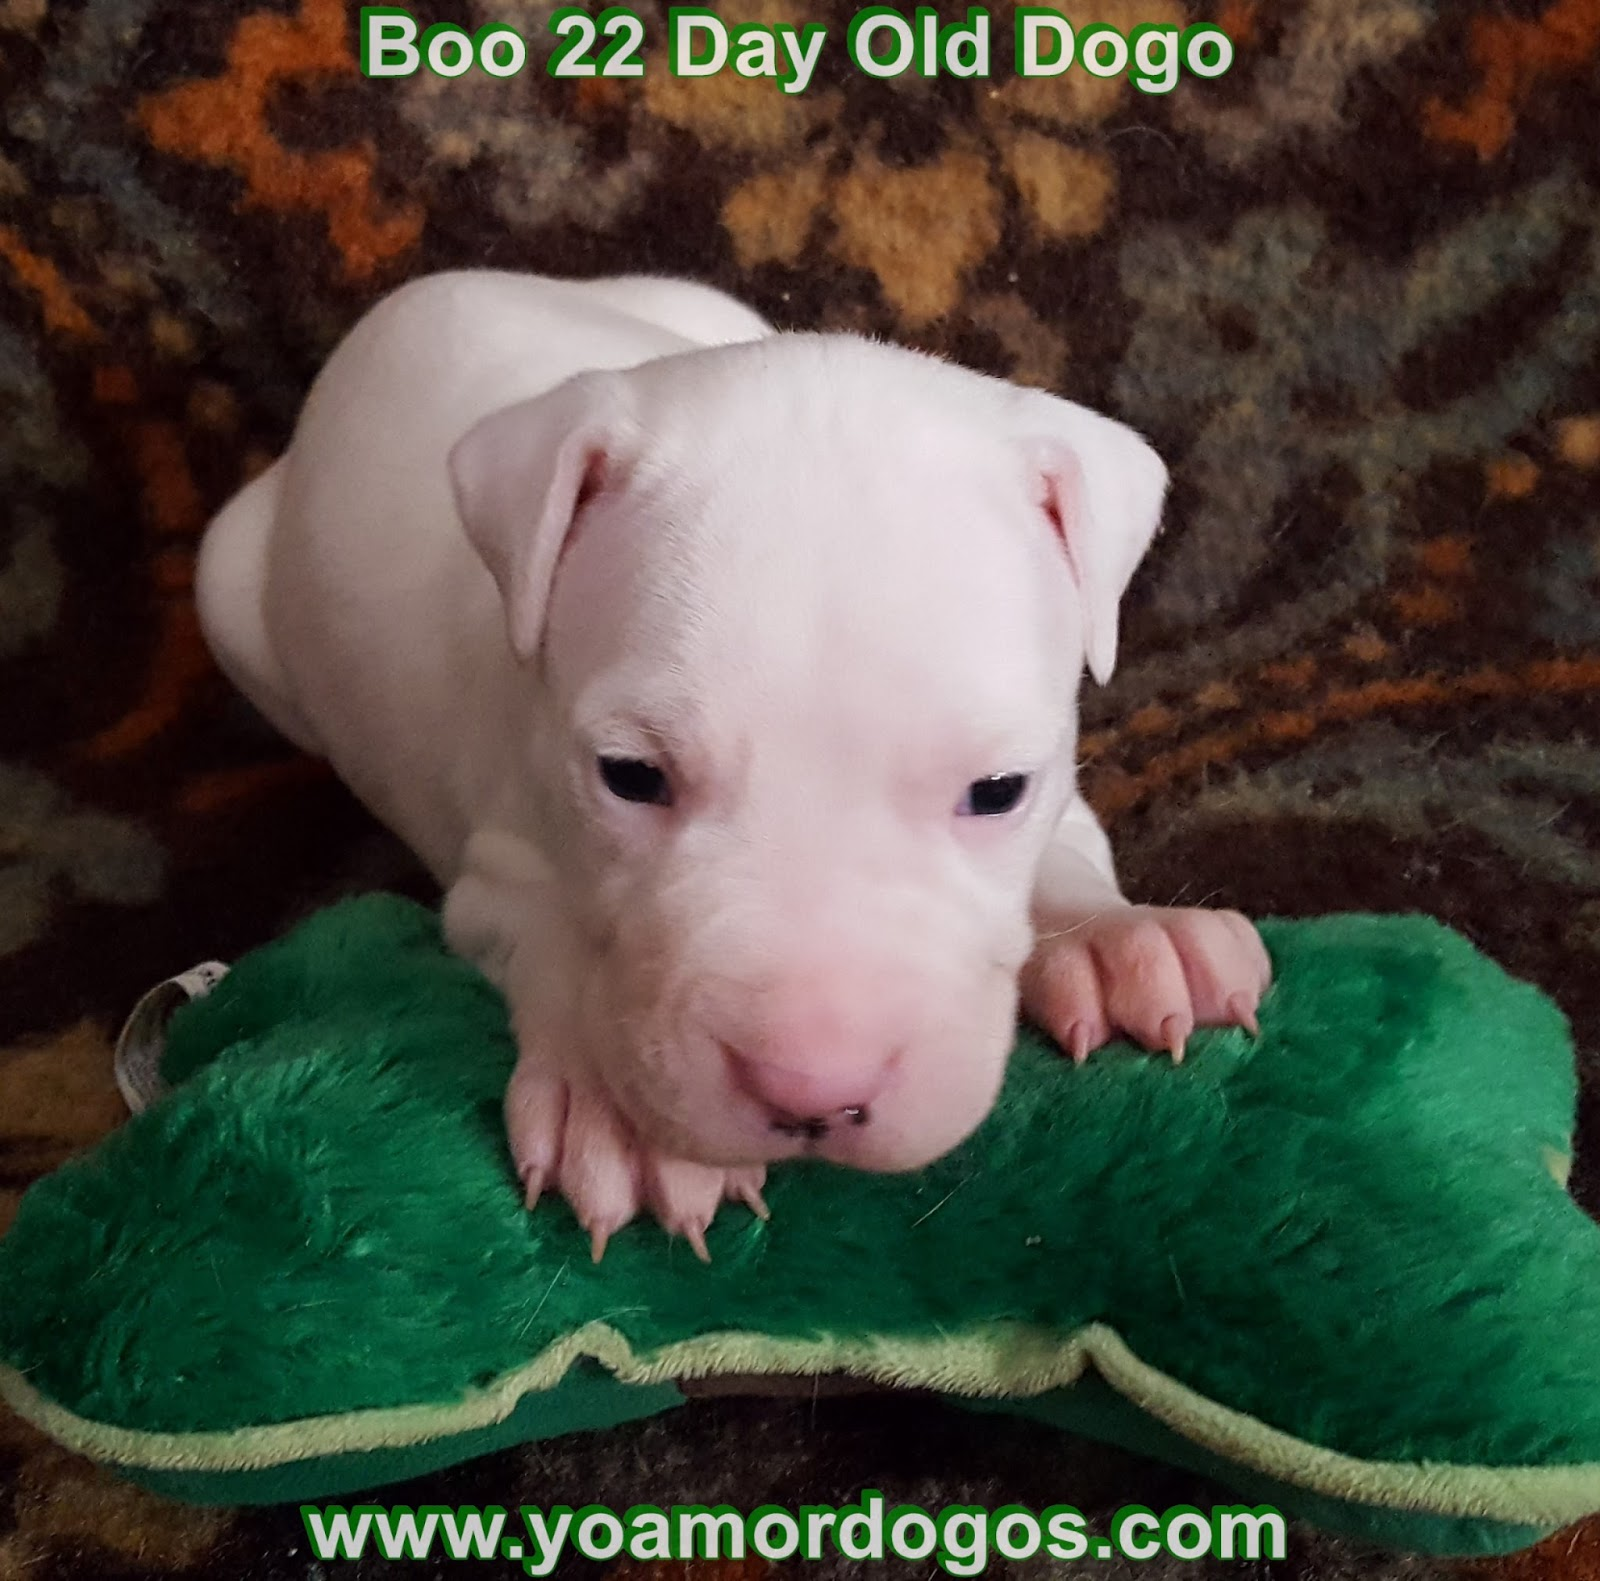 Yo Amor Dogo's: 22 Day Old Dogo Argentino Puppies for Sale